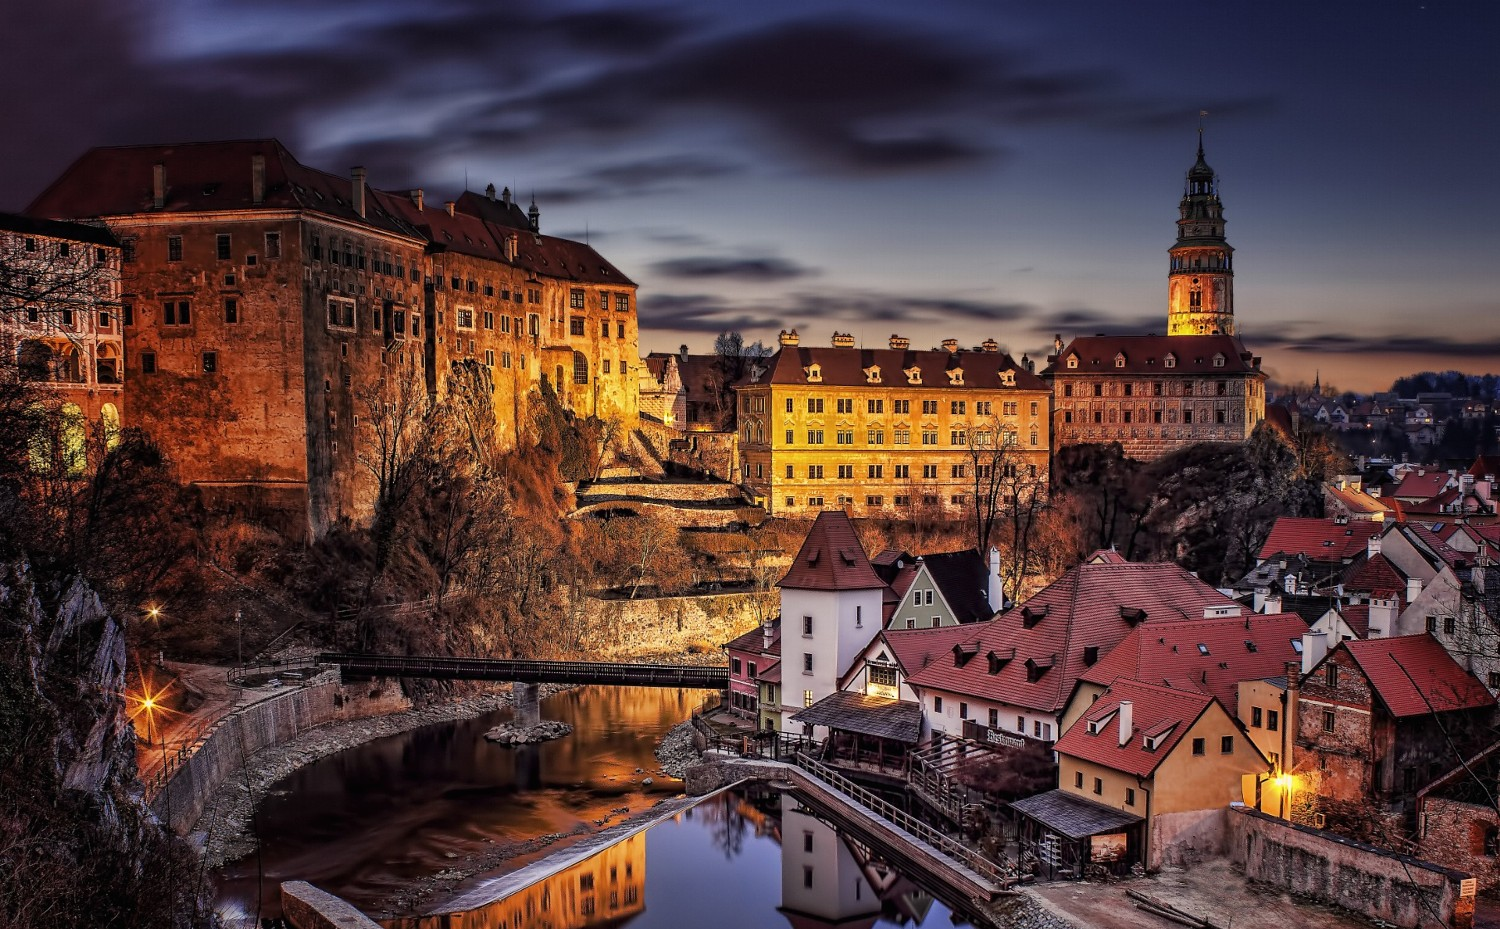 Discover Cesky Krumlov: One of the Most Magical Cities on Earth